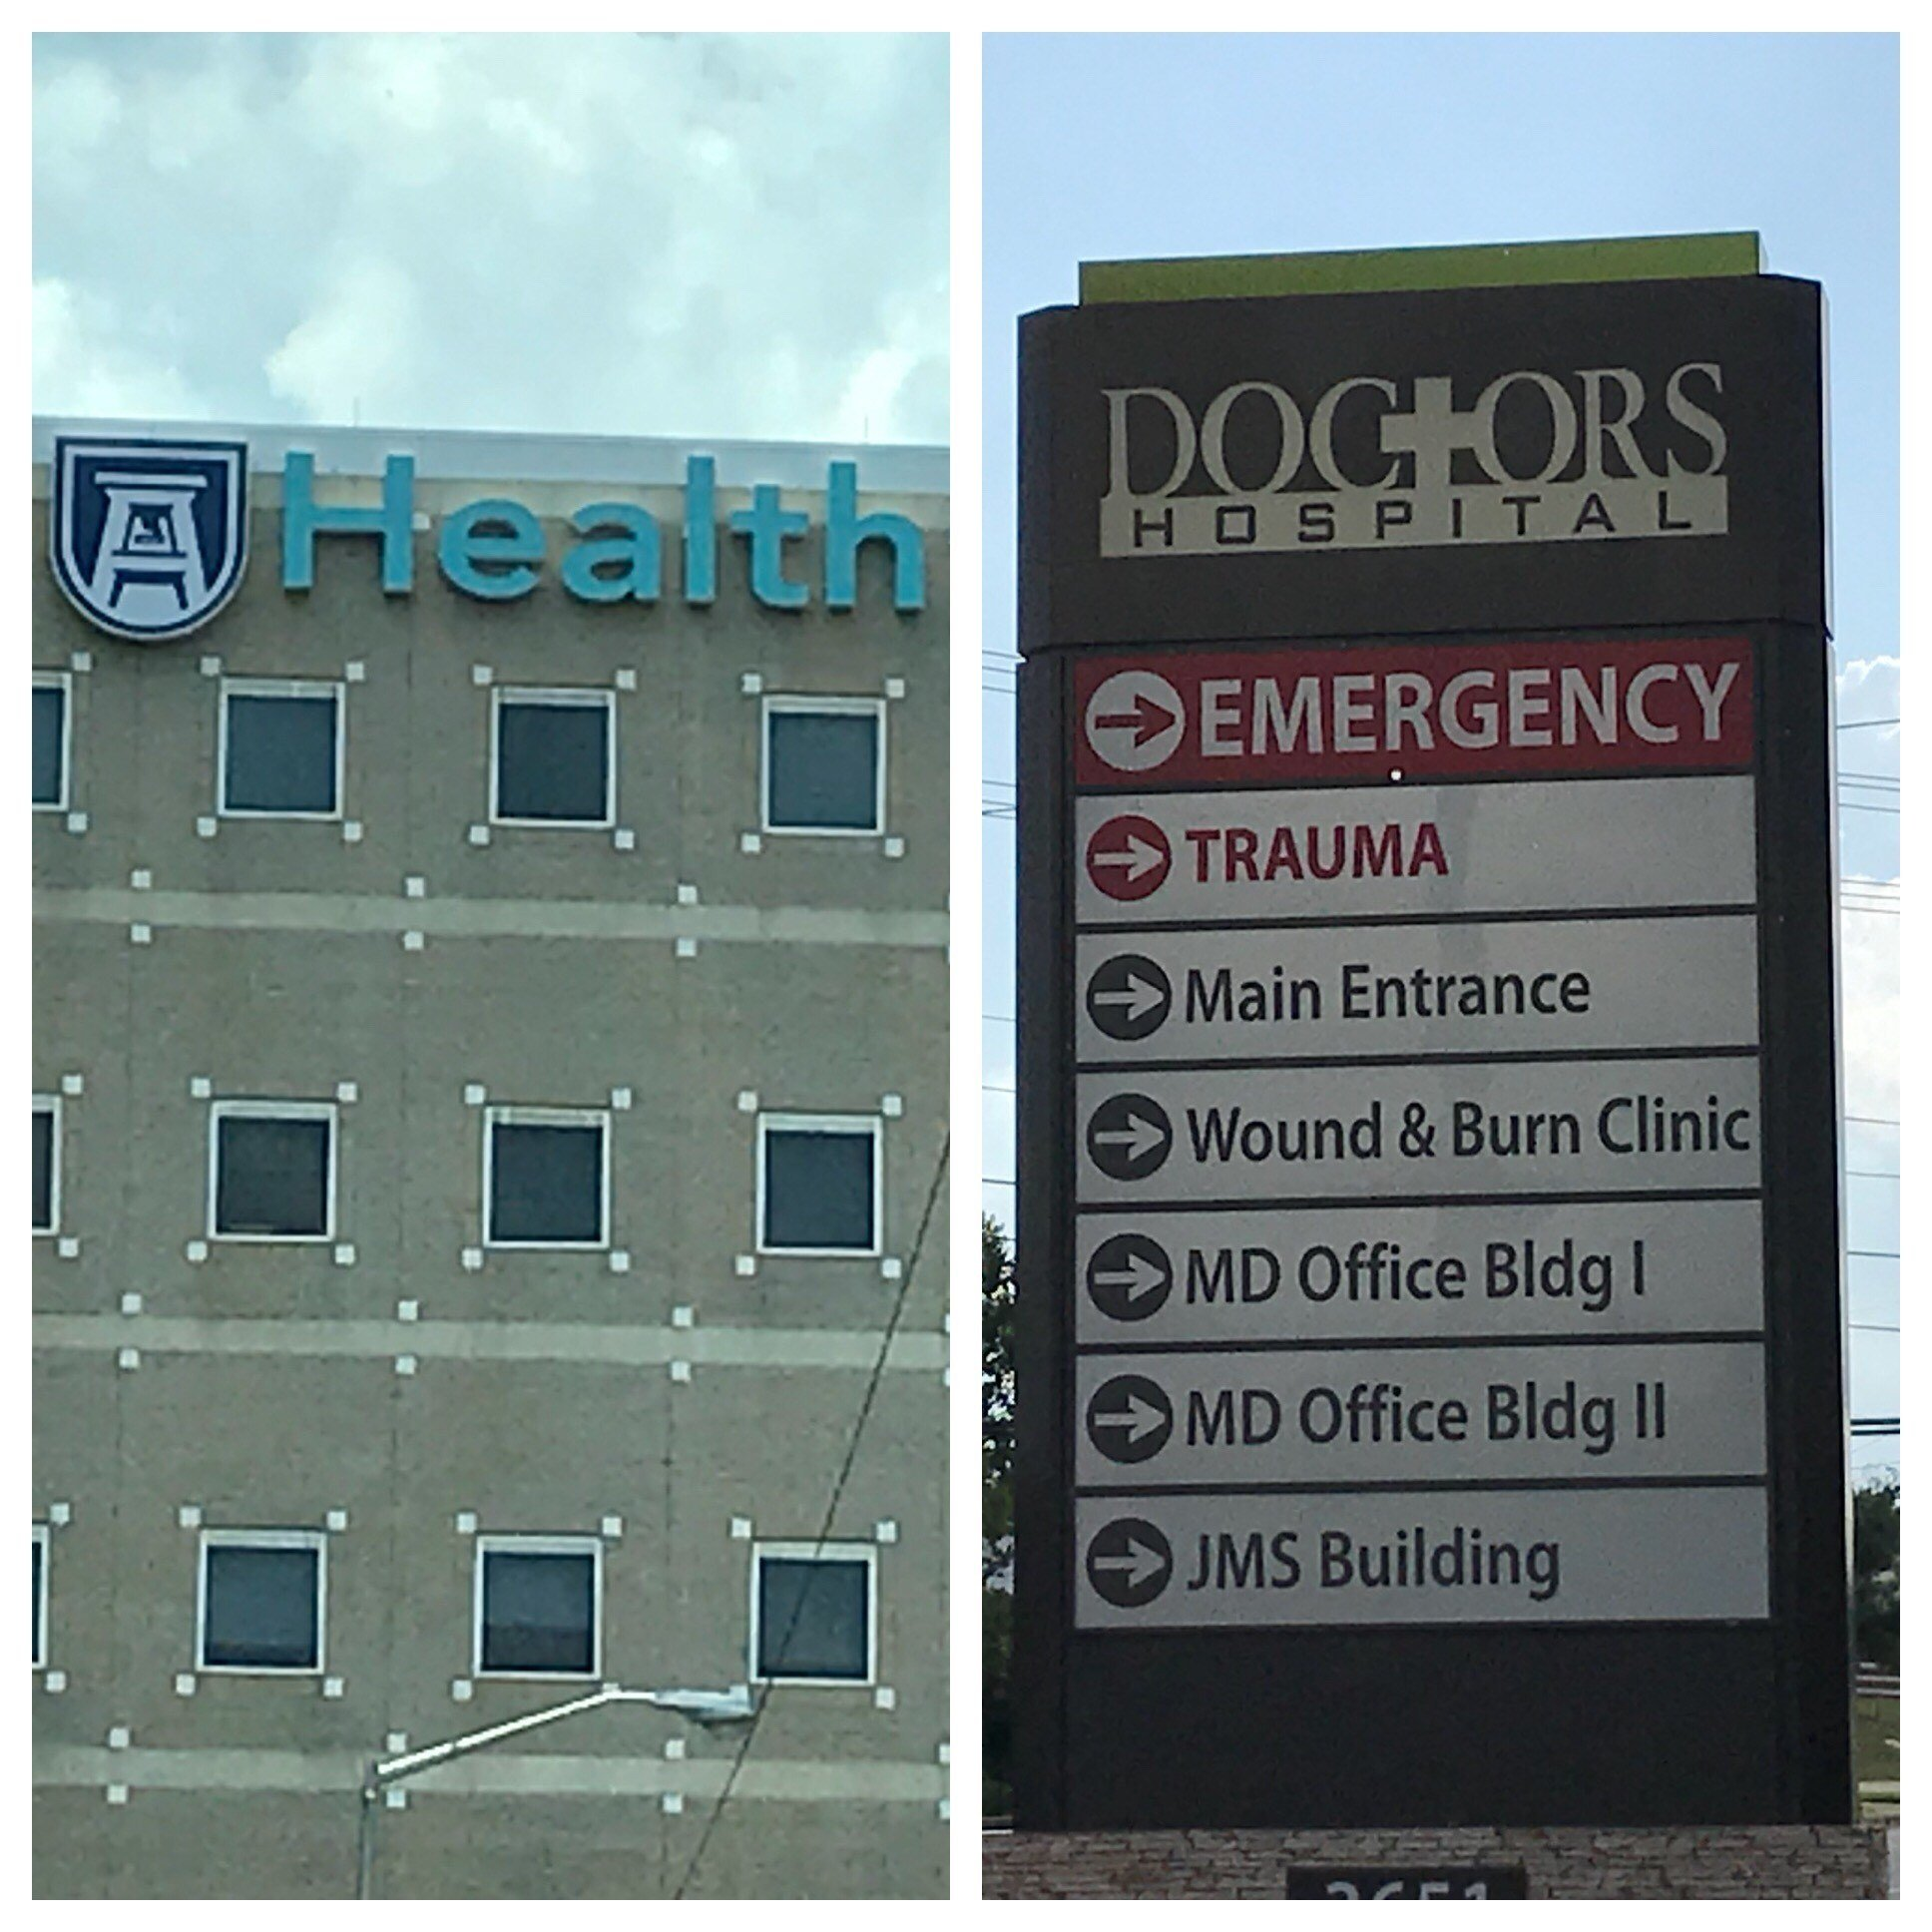 Augusta University Medical Center and Doctor's Hospital (Source: WFXG)